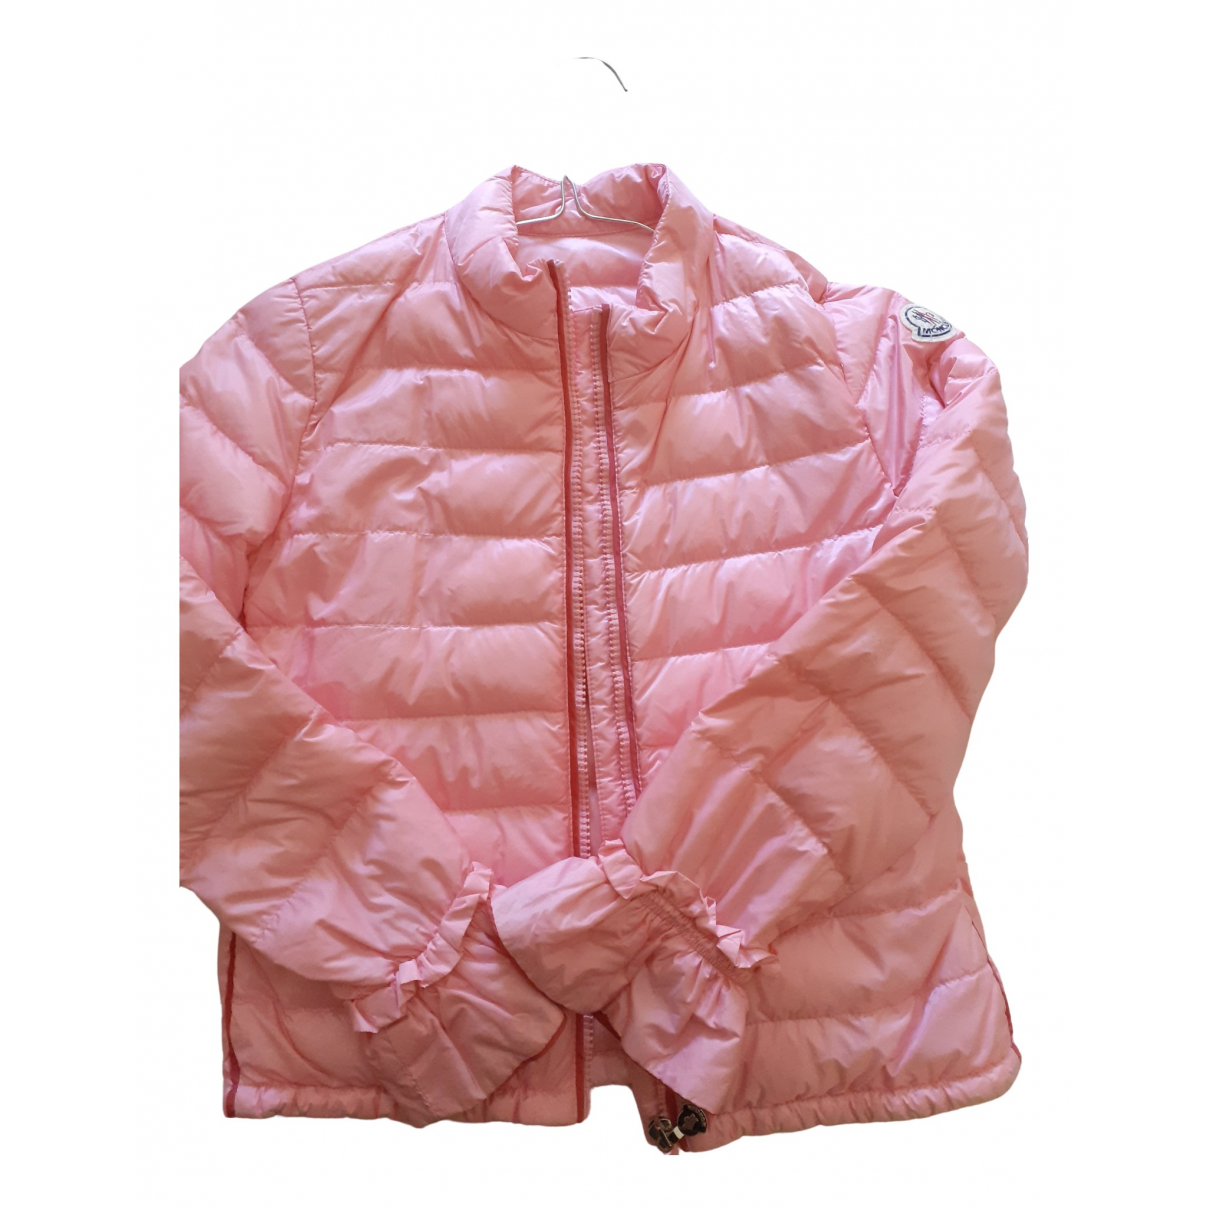 Moncler N Pink jacket & coat for Kids 10 years - up to 142cm FR